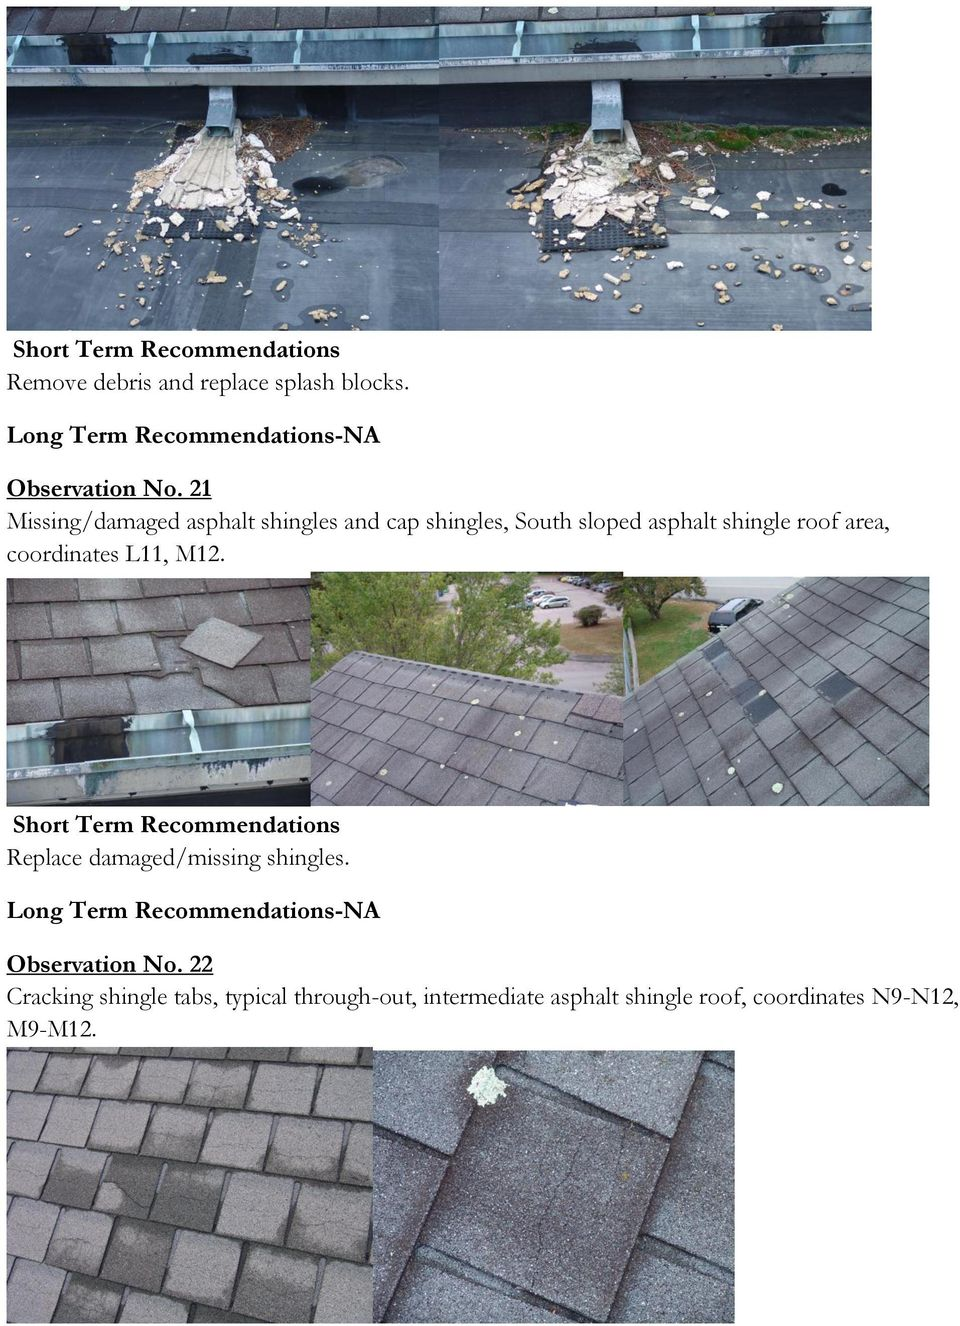 roof area, coordinates L11, M12. Replace damaged/missing shingles.